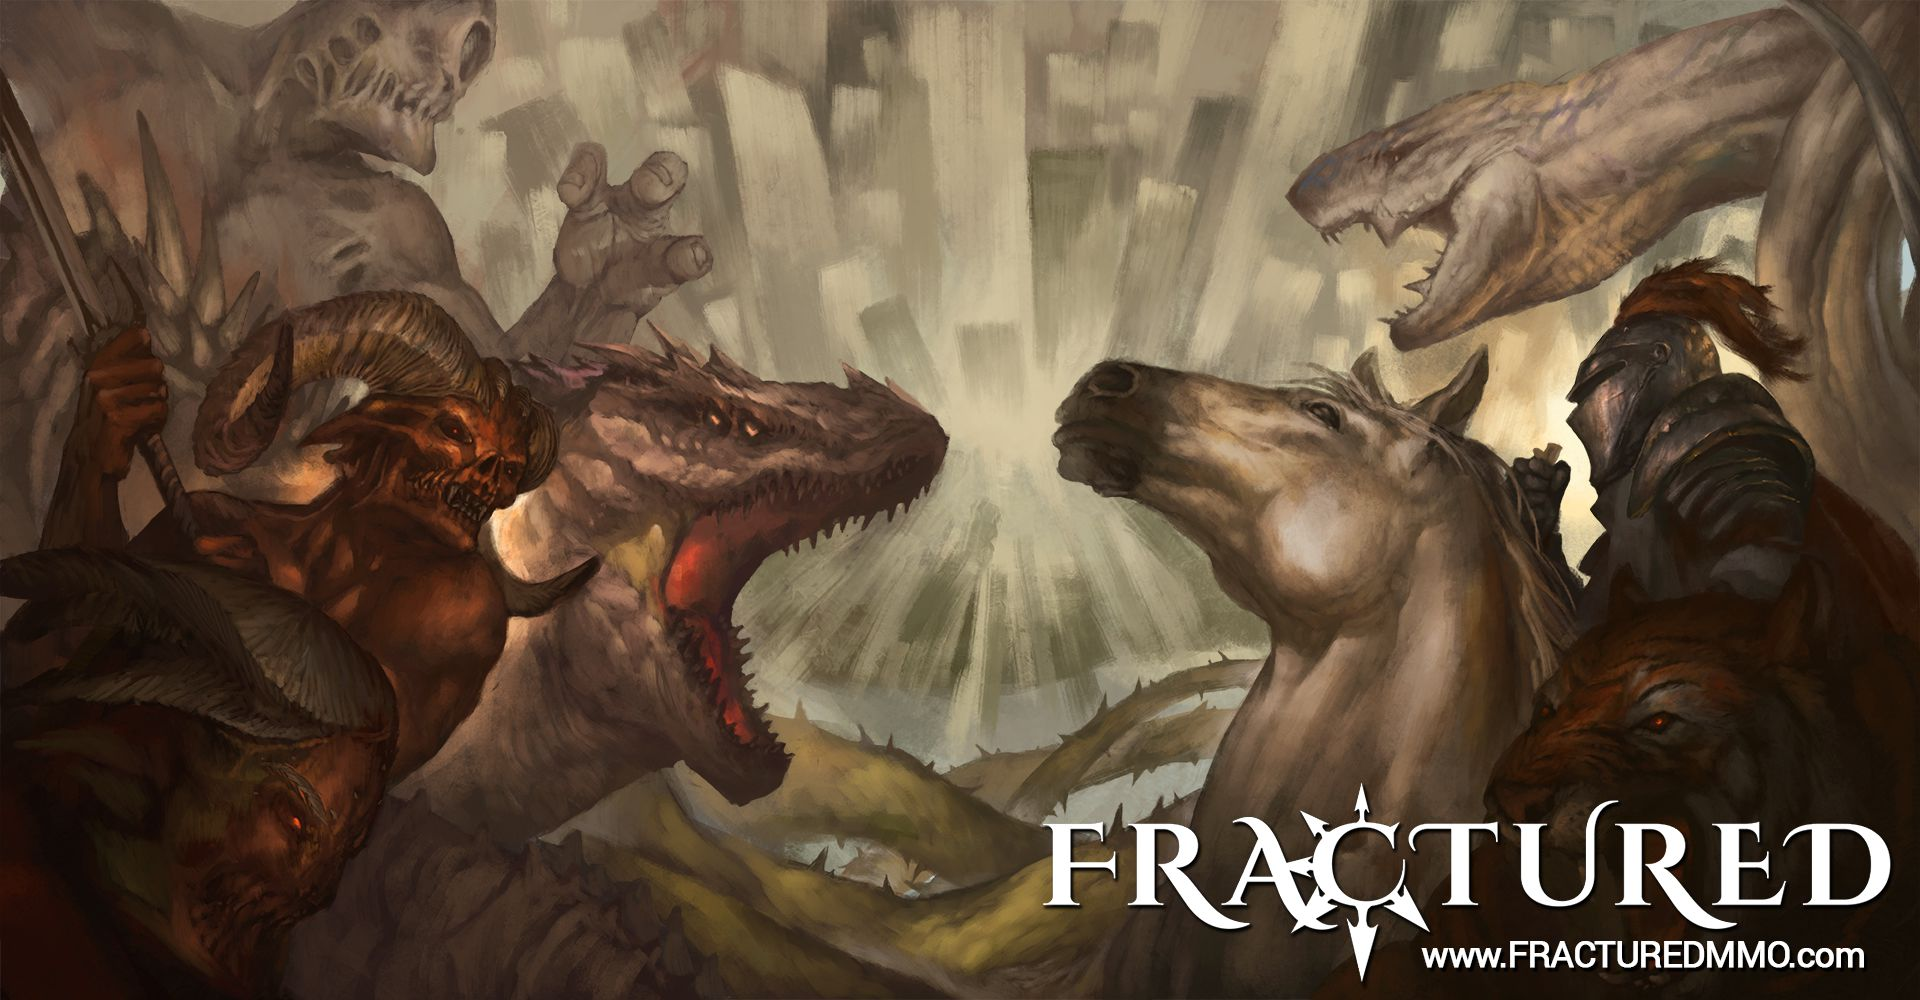 Fractured: Fractured MMO